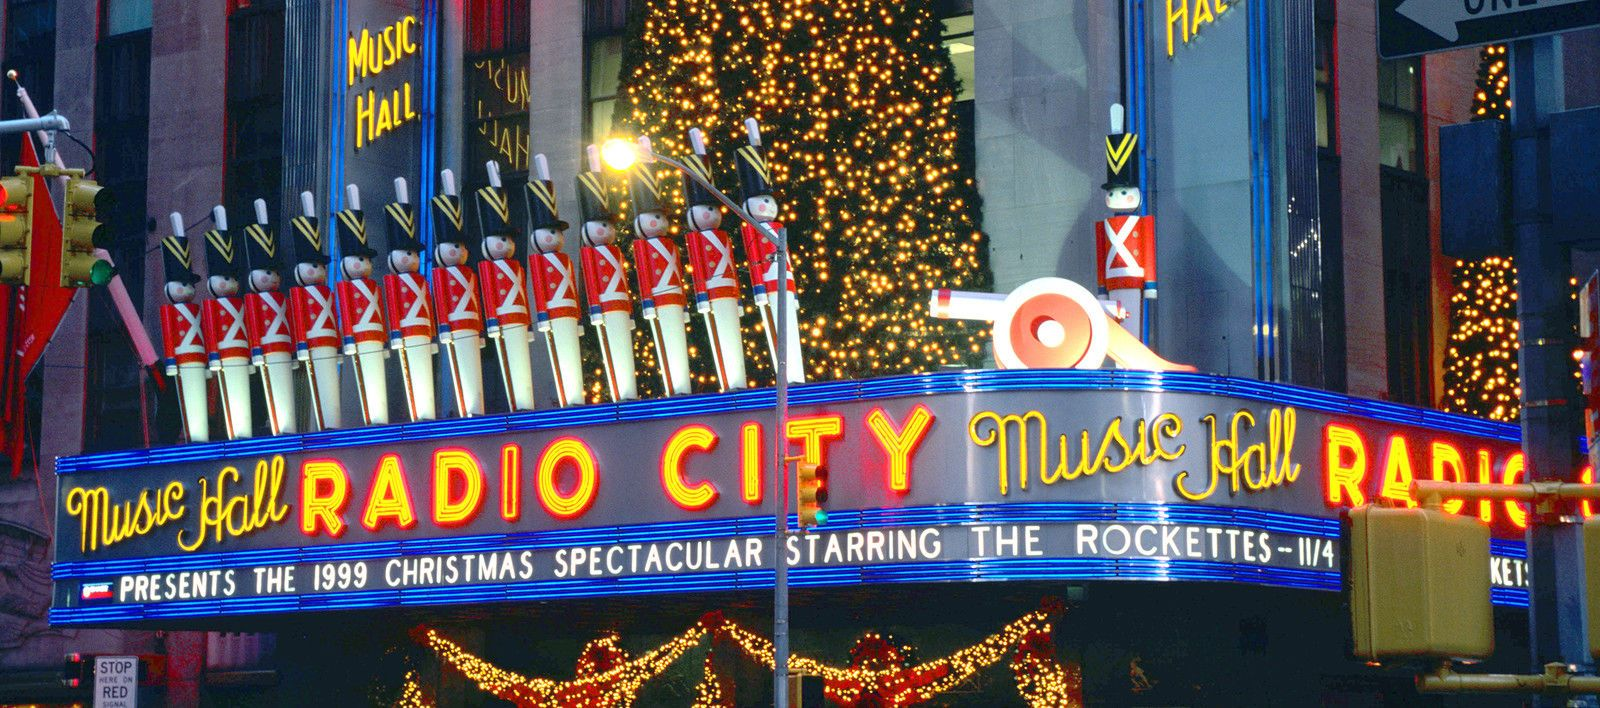 christmas spectacular starring the radio city rockettes new york tickets buy and sell christmas spectacular - Radio City Christmas Show Tickets